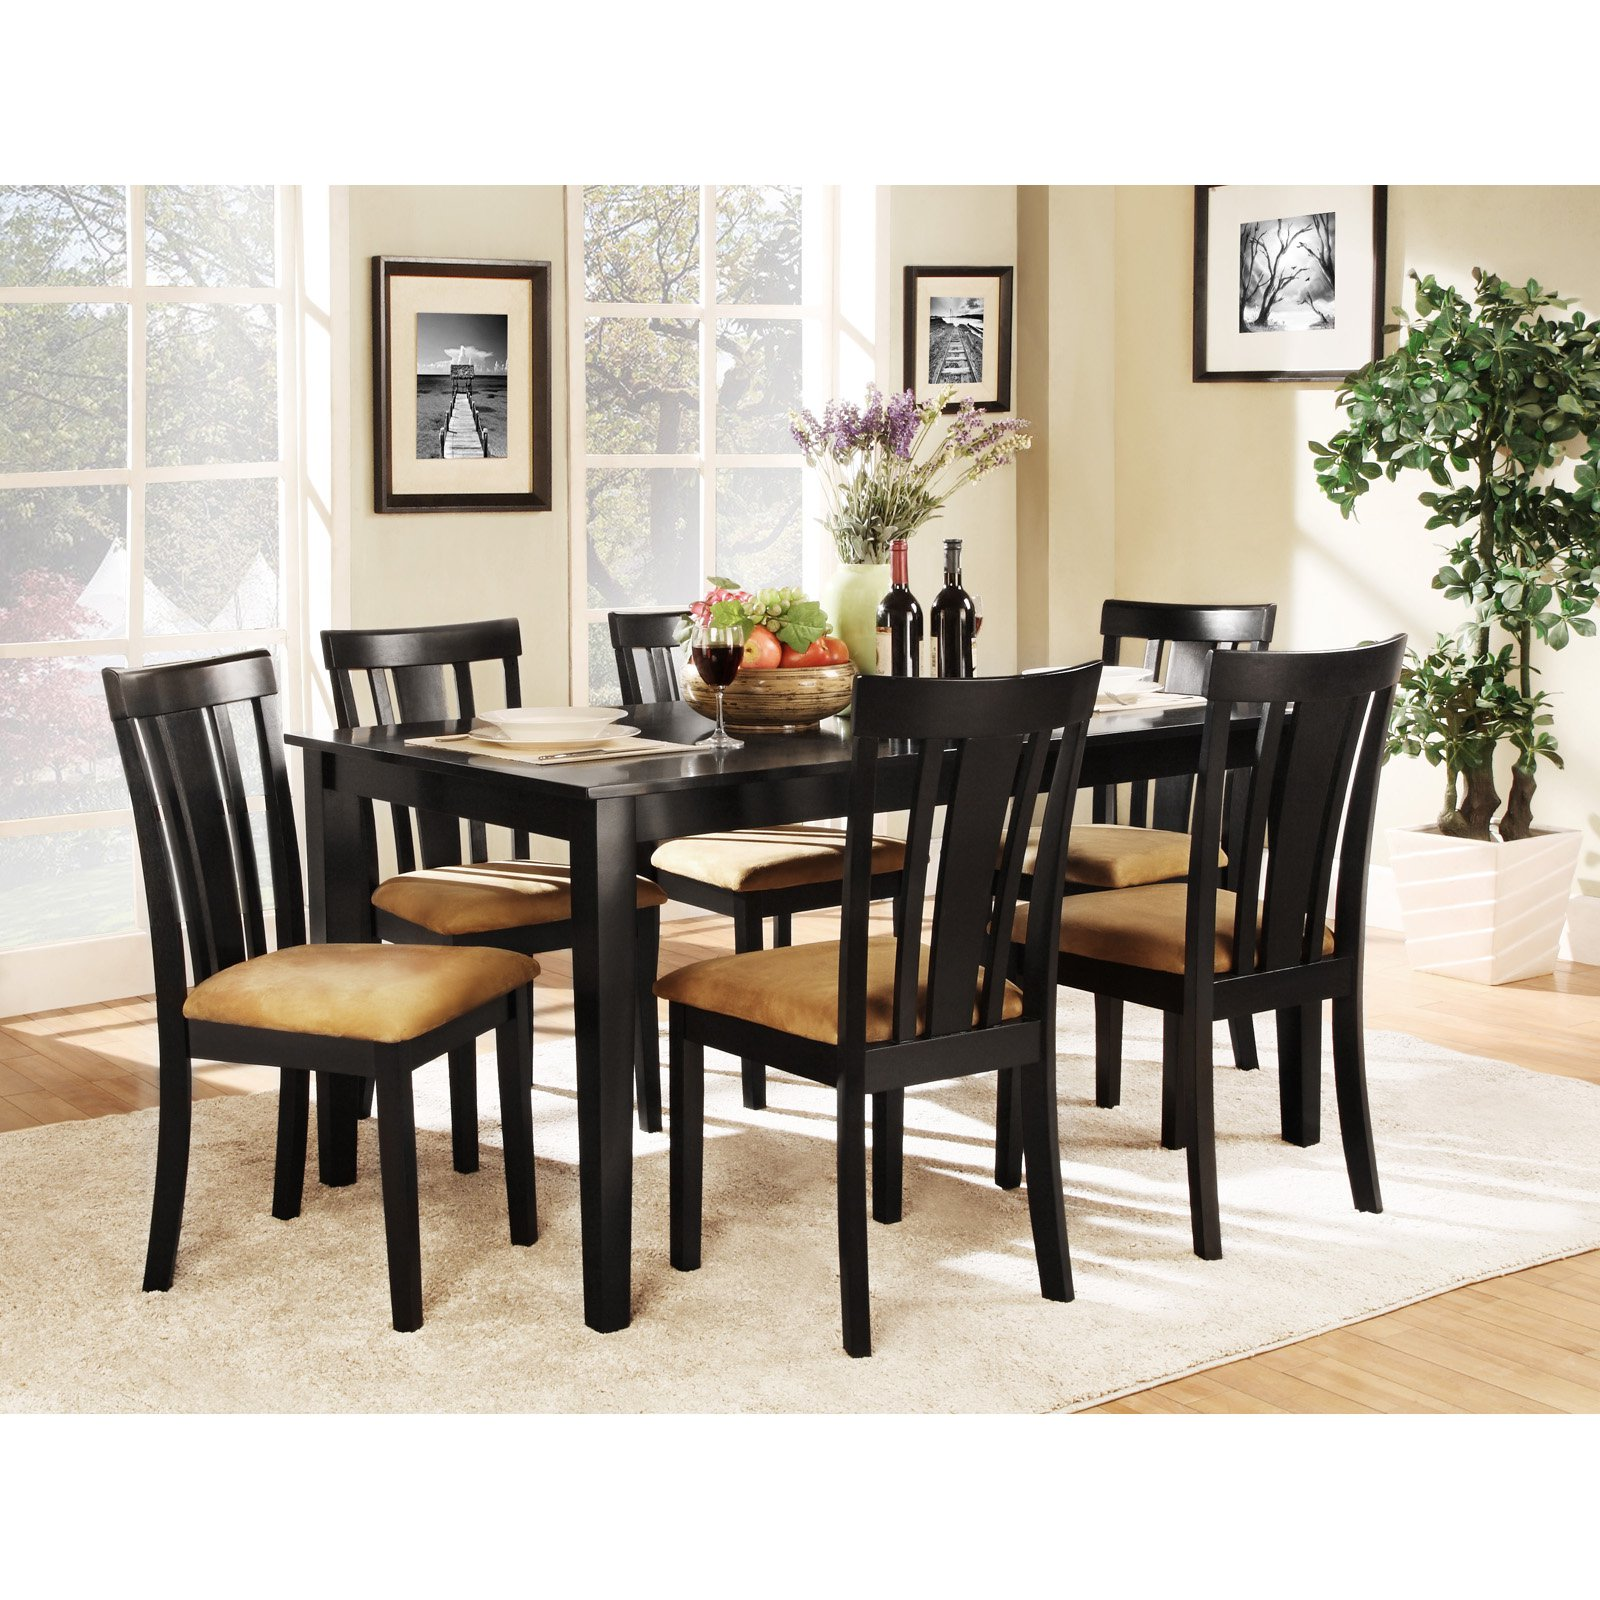 Homelegance Tibalt 7 Piece Rectangle Black Dining Table Set - 60 in....